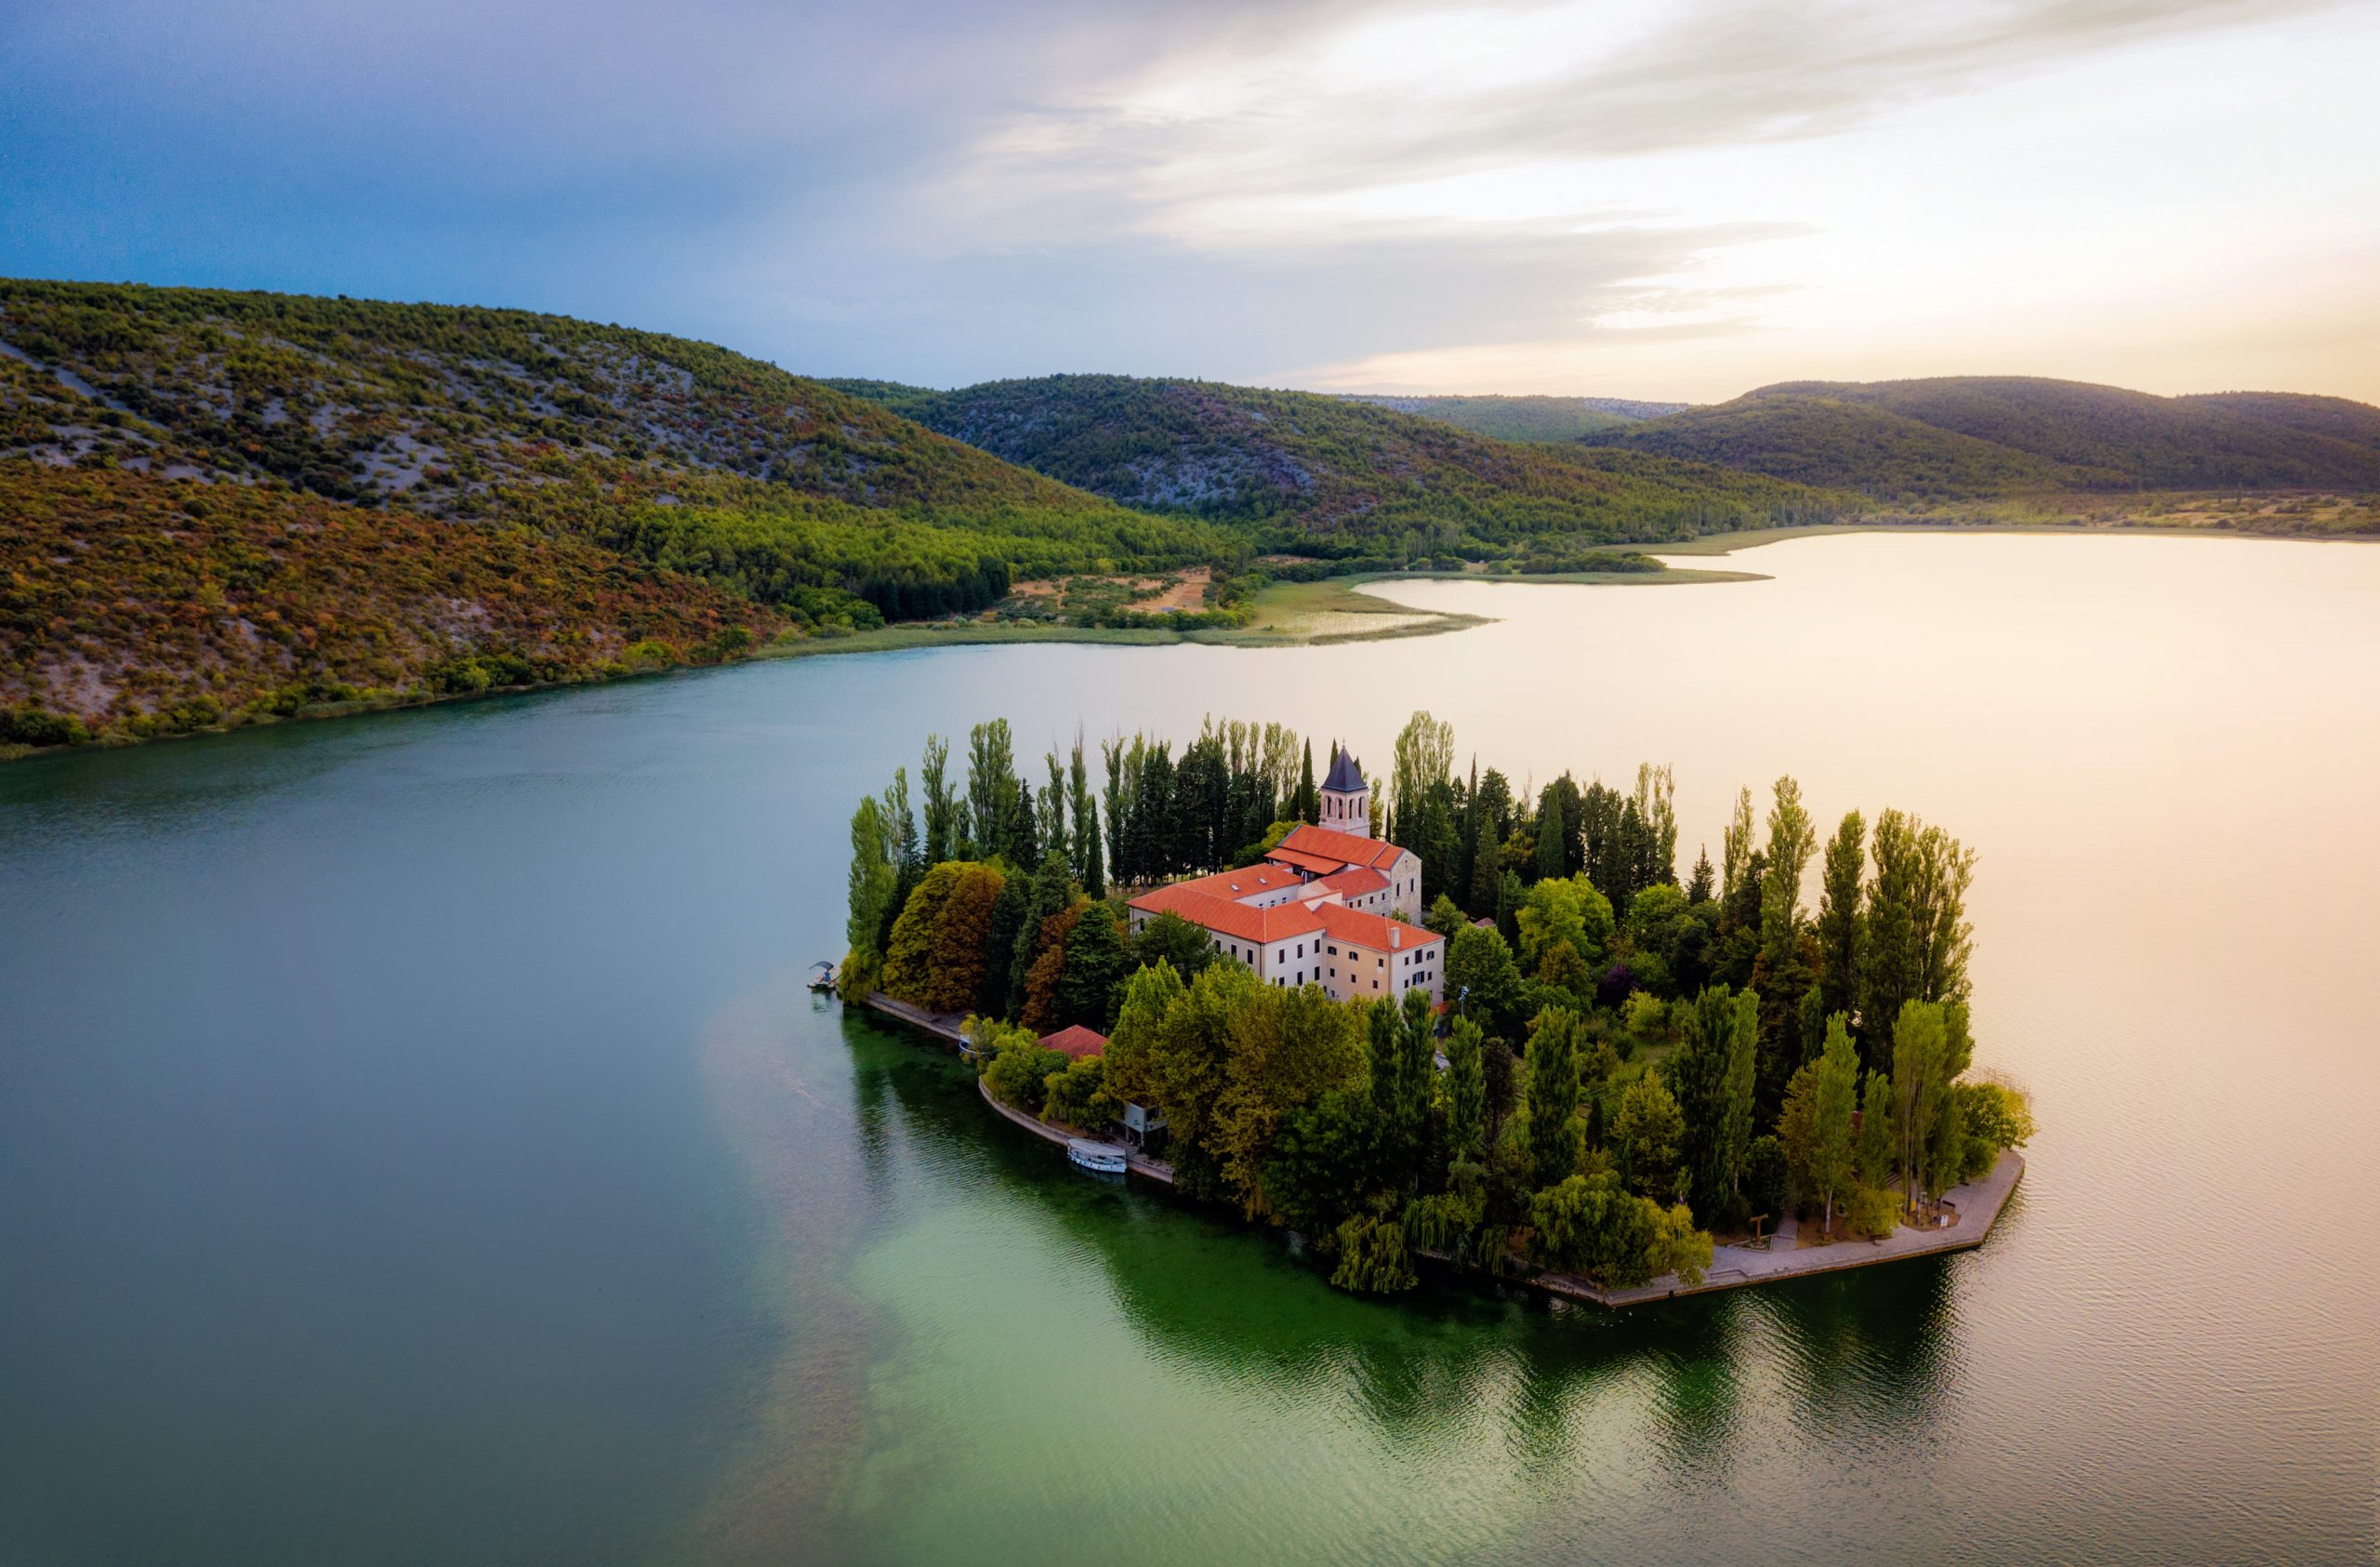 See The Visovac During The Krka National Park And Sibenik Day Tour From Split